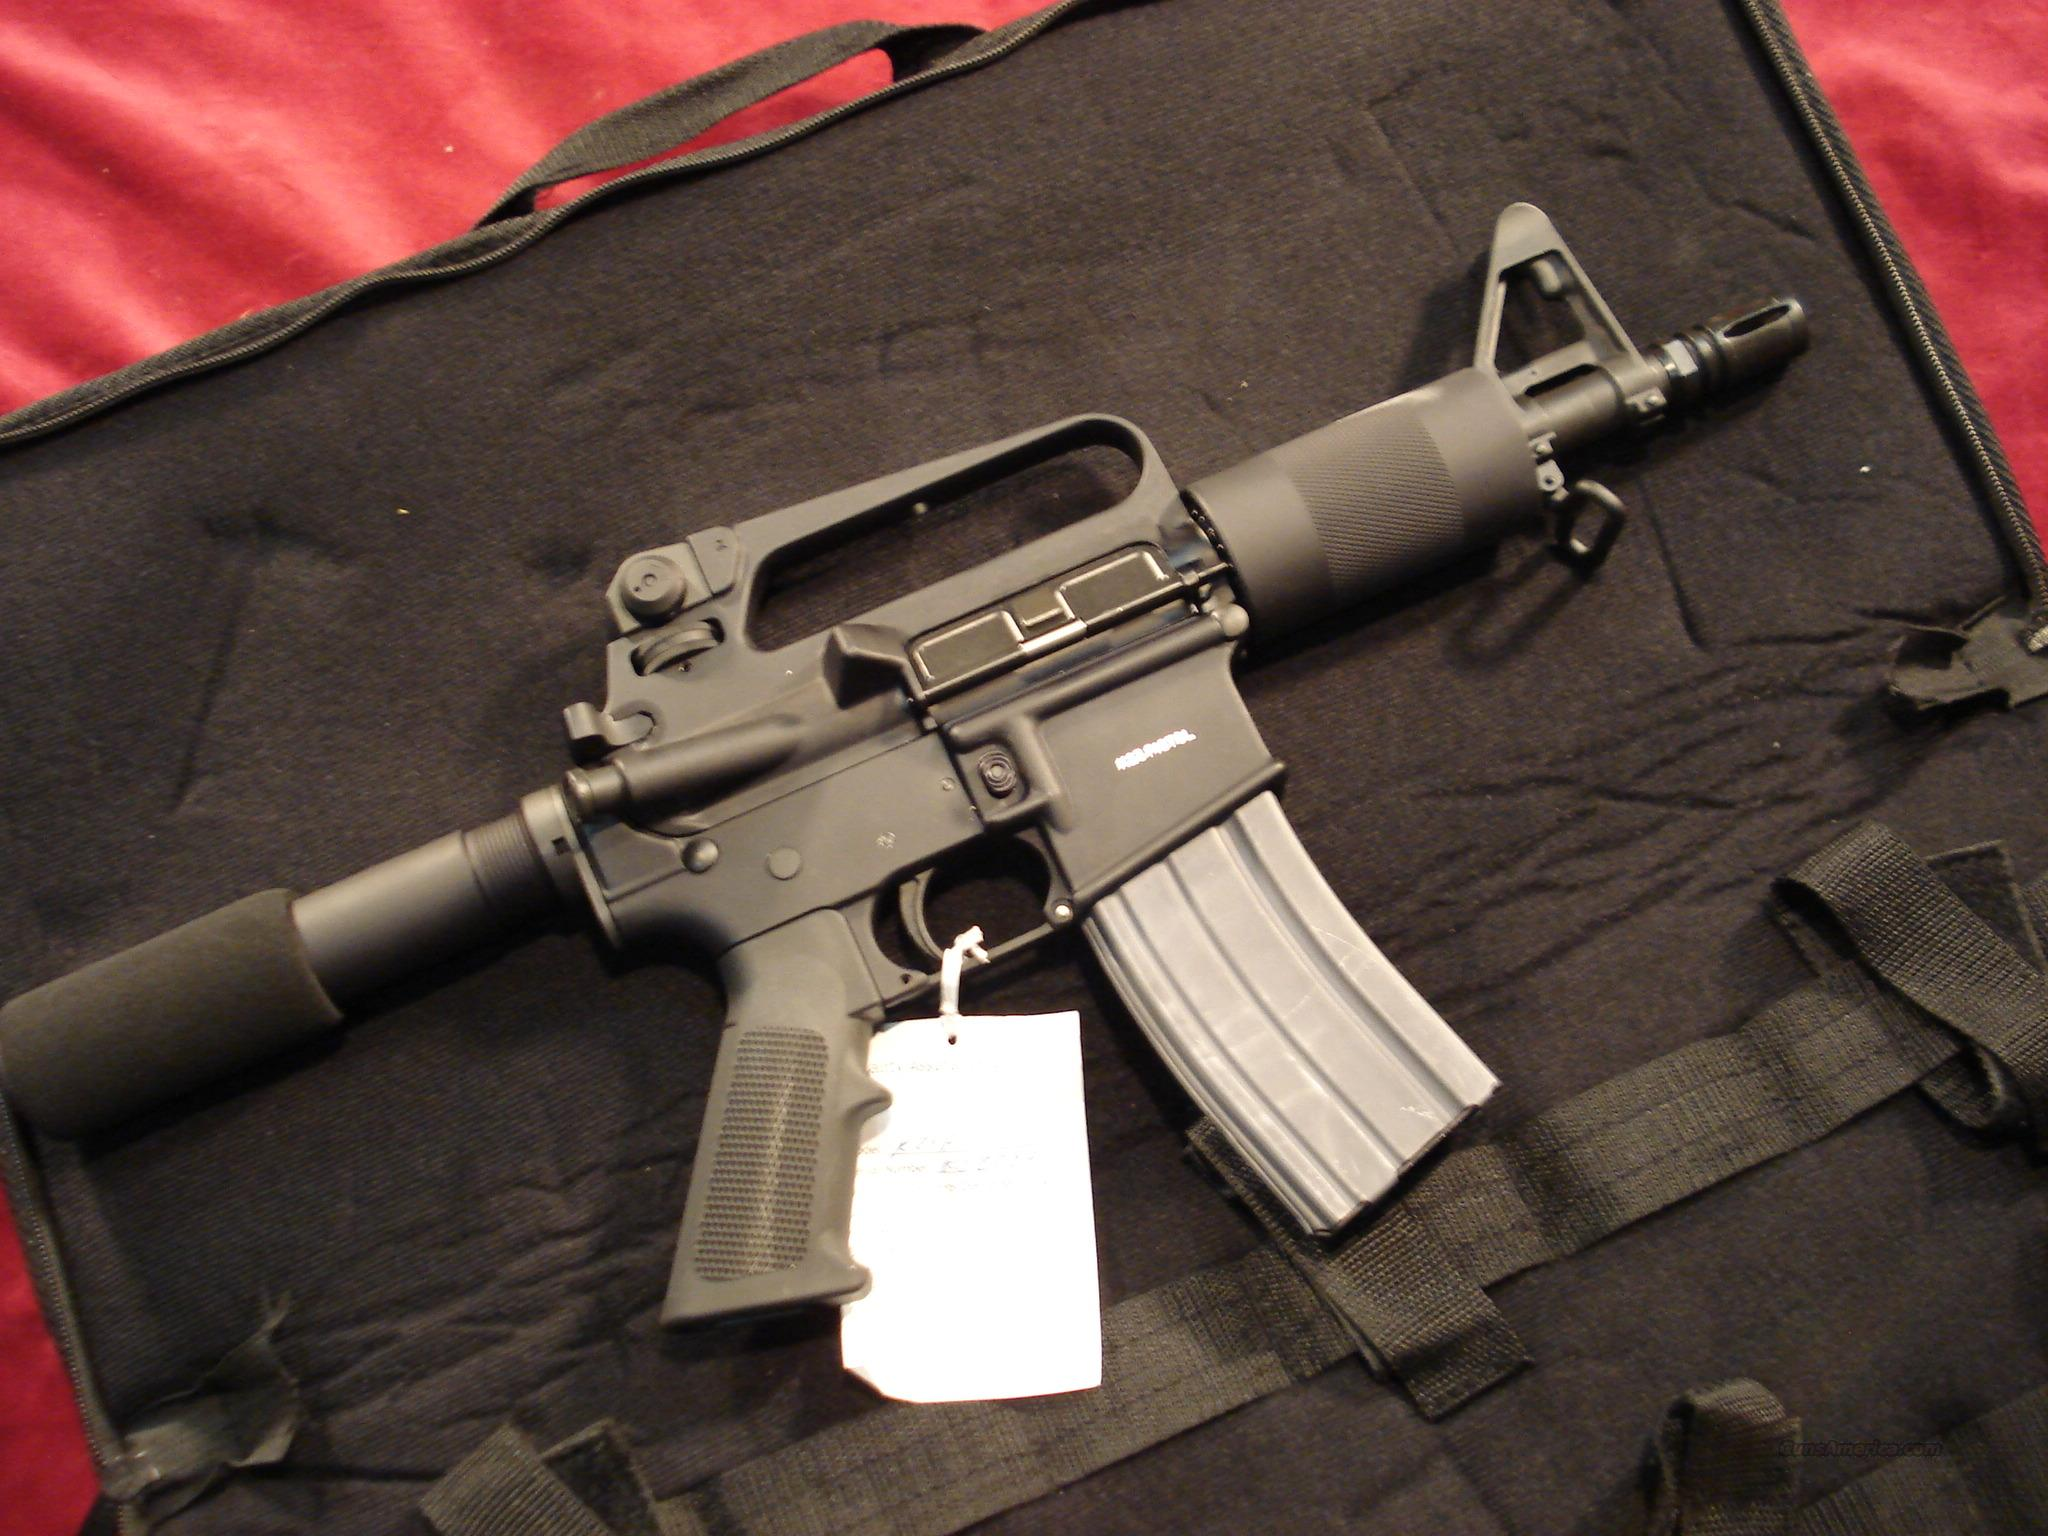 OLYMPIC ARMS K23P AR-15 PISTOL NEW  Guns > Pistols > Olympic Arms Pistols